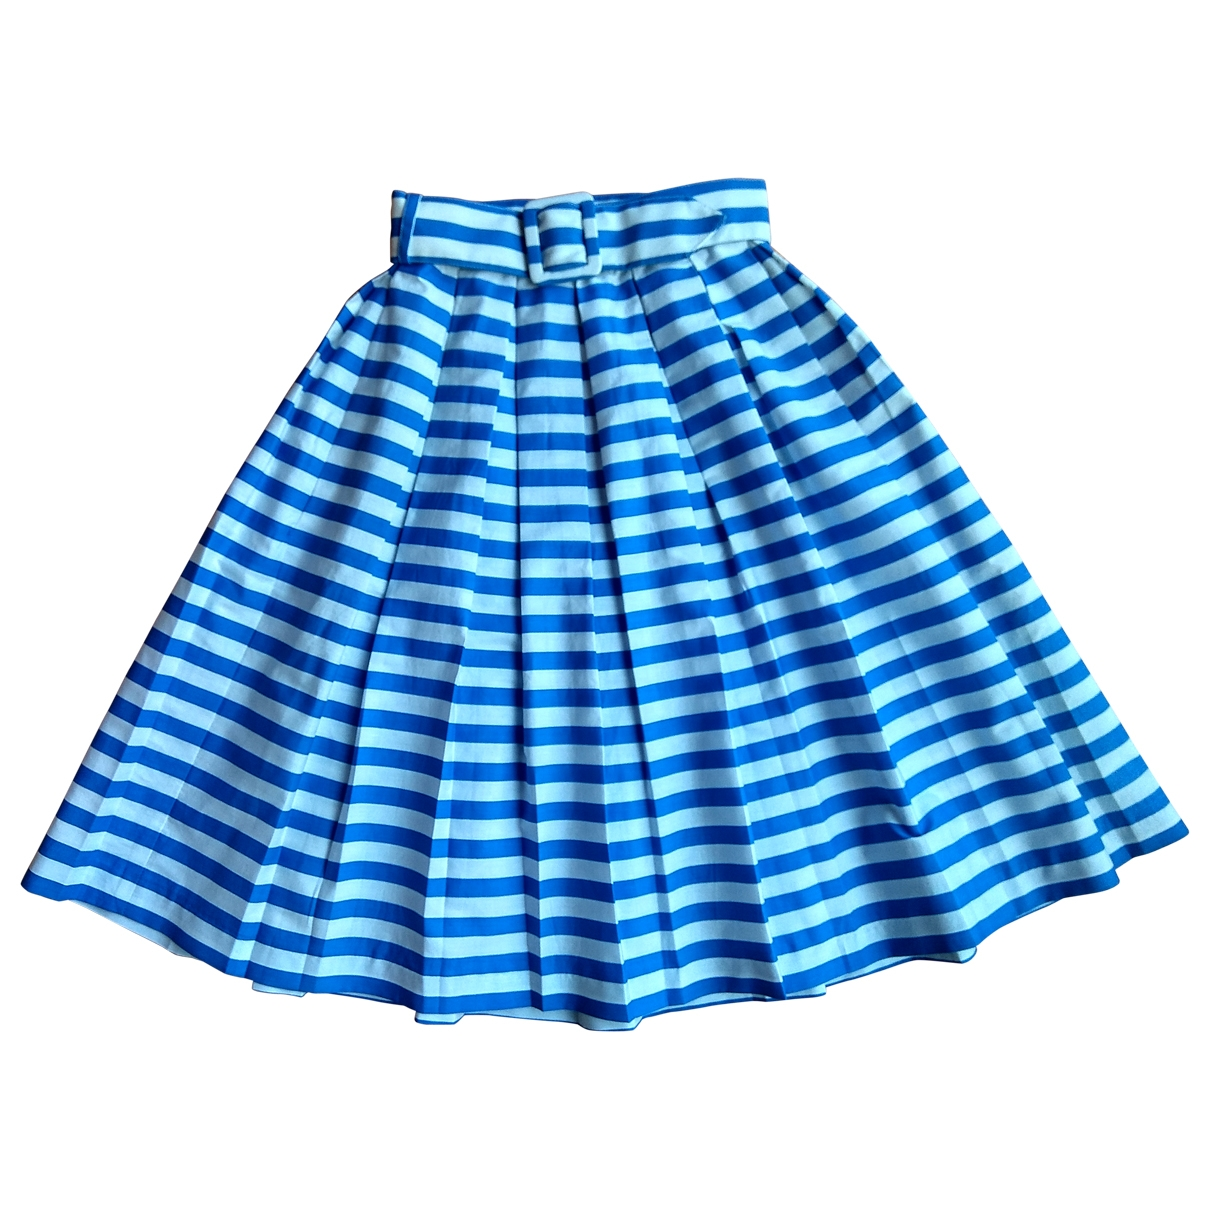 Cacharel \N Blue Cotton skirt for Kids 8 years - up to 128cm FR